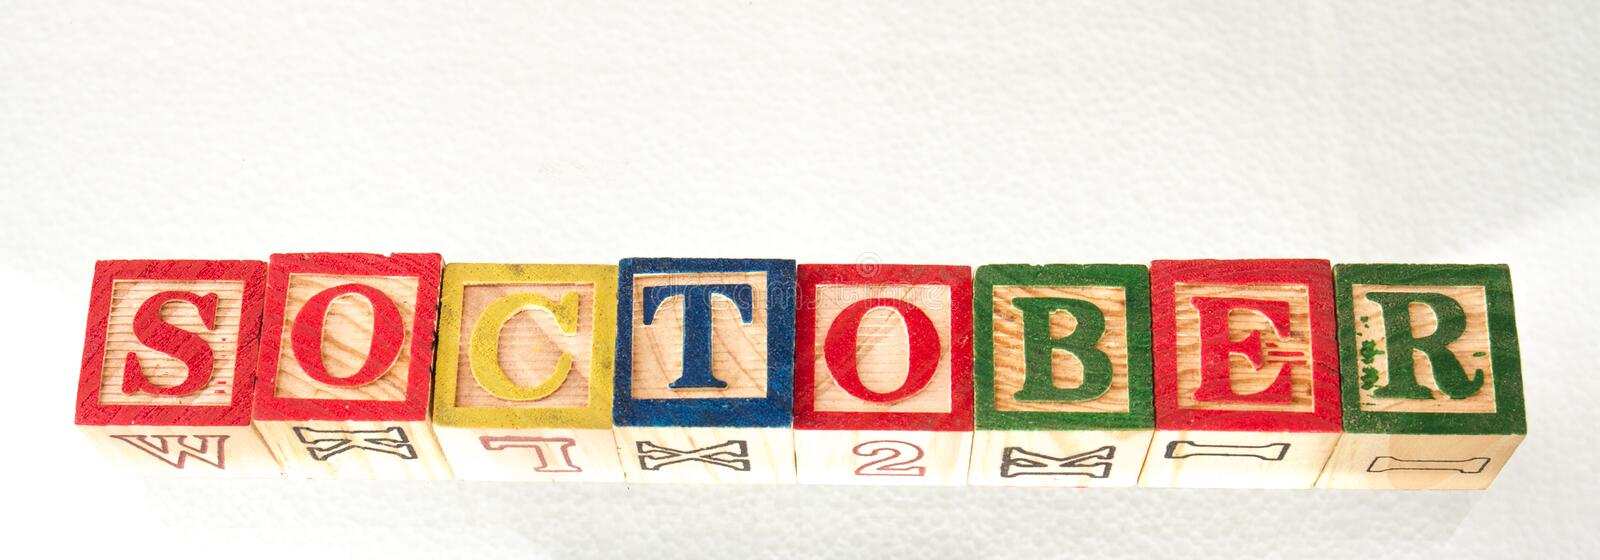 The term soctober visually displayed. The term soctober displayed visually on a white background using colorful wooden toy blocks image with copy space in stock images